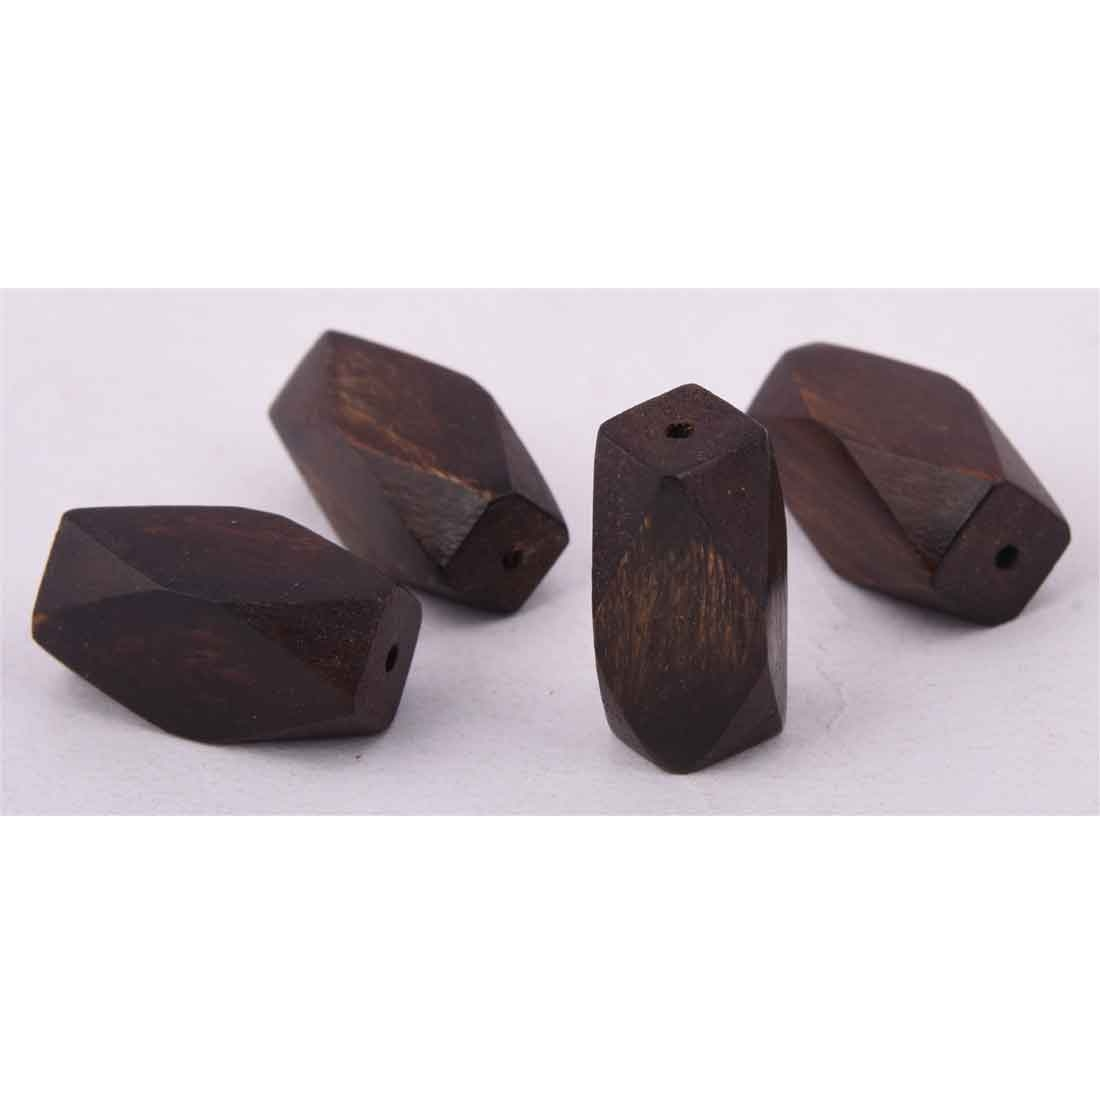 Beads India 1700099 Handcrafted Wooden Beads/Discounts Above 500 pcs